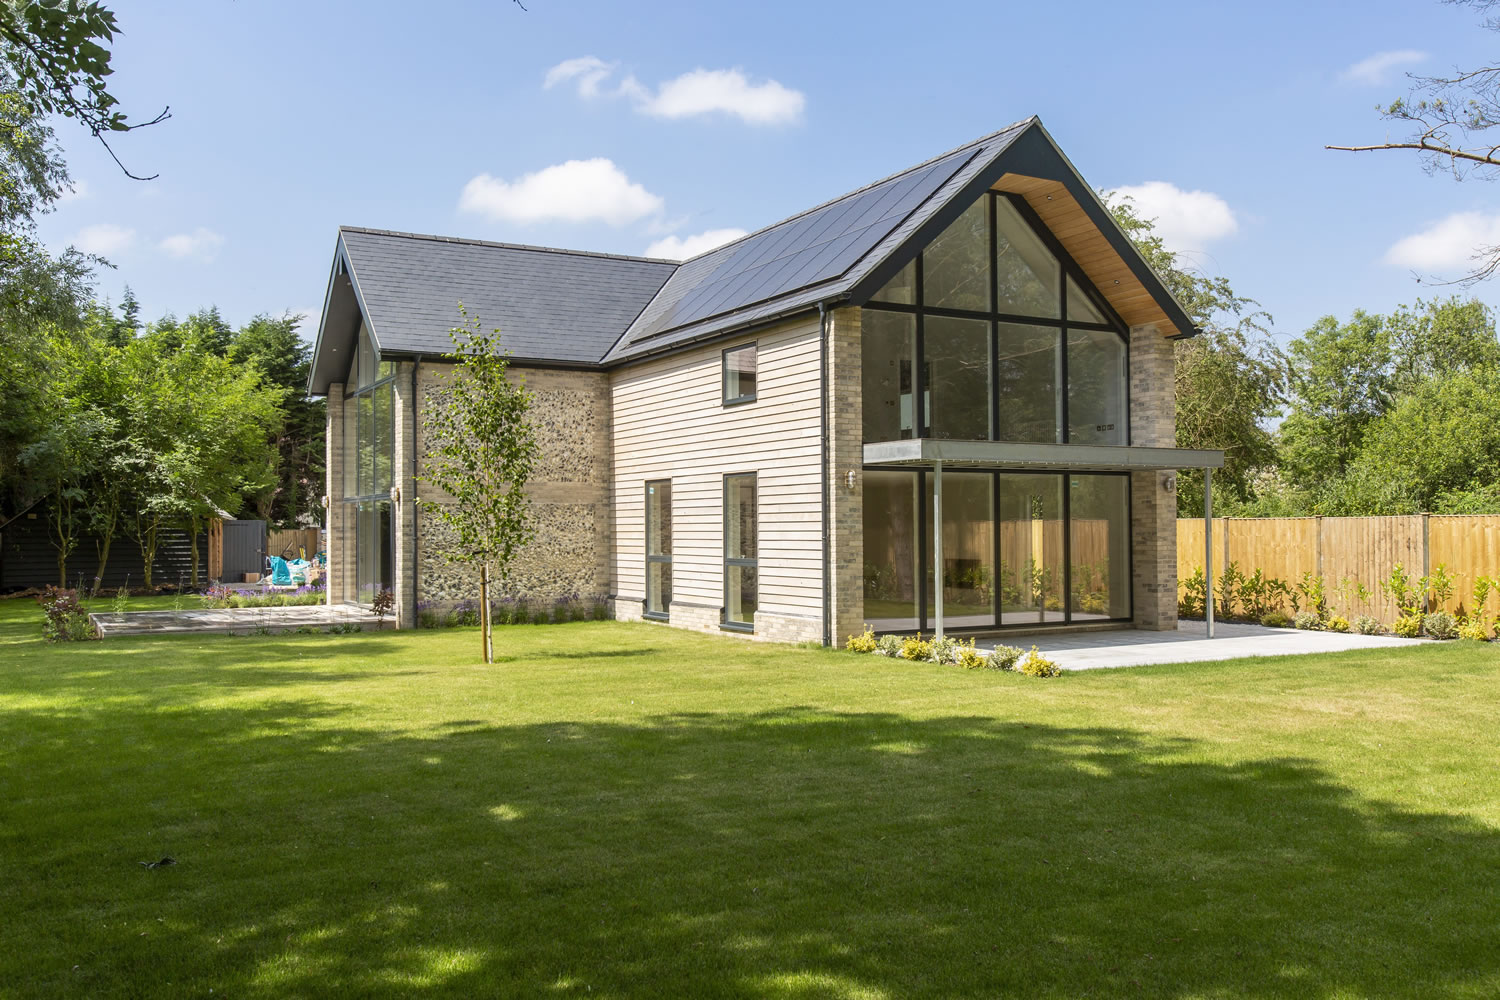 Sips-Eco-Luxury-Energy-Efficient-Passivhaus-Sips-Home-Stone-Timber-Clad